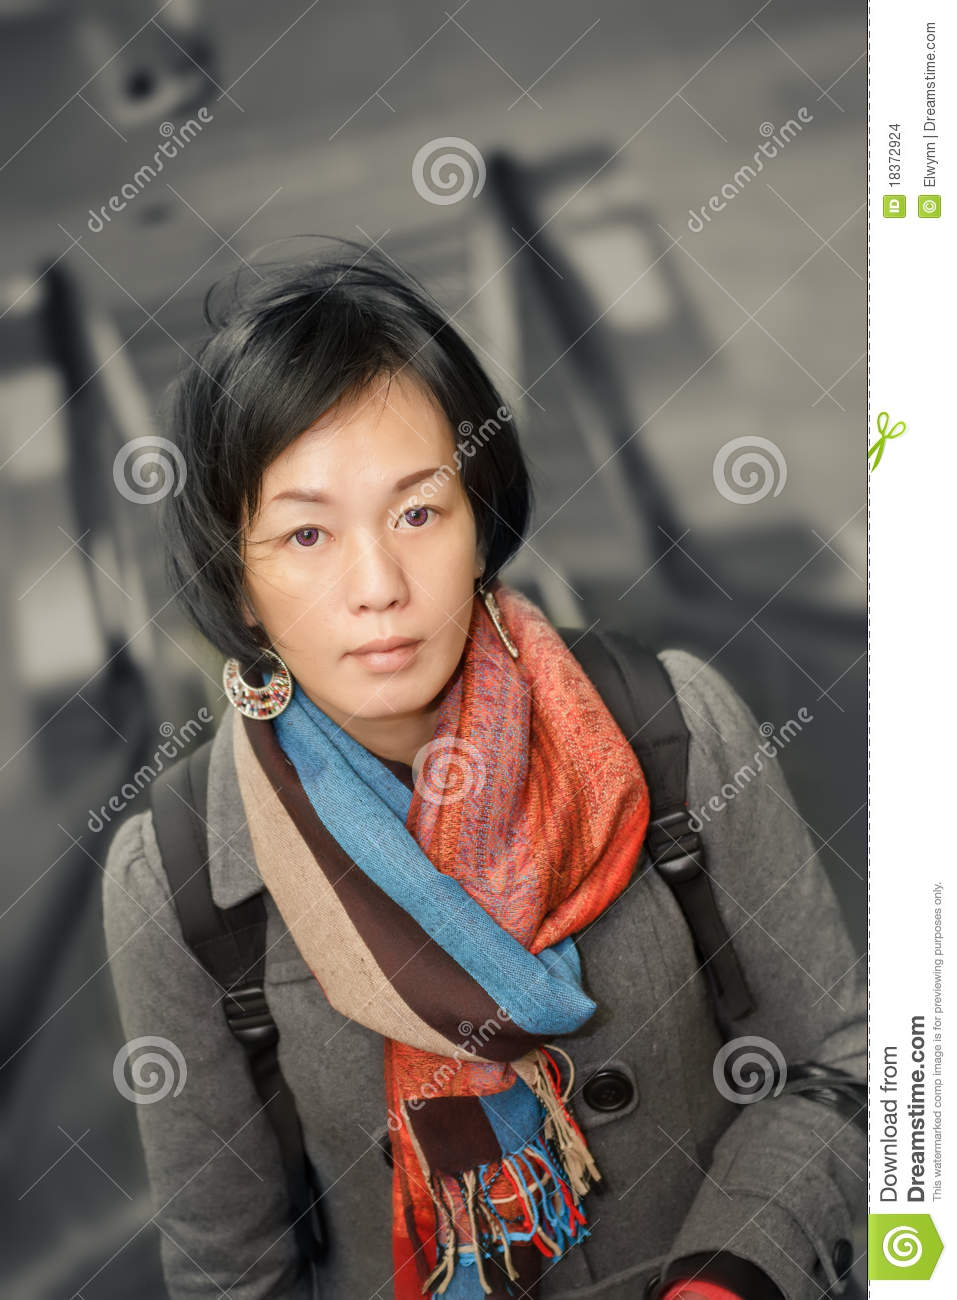 mature asian beauty stock photo. image of face, expressive - 18372924